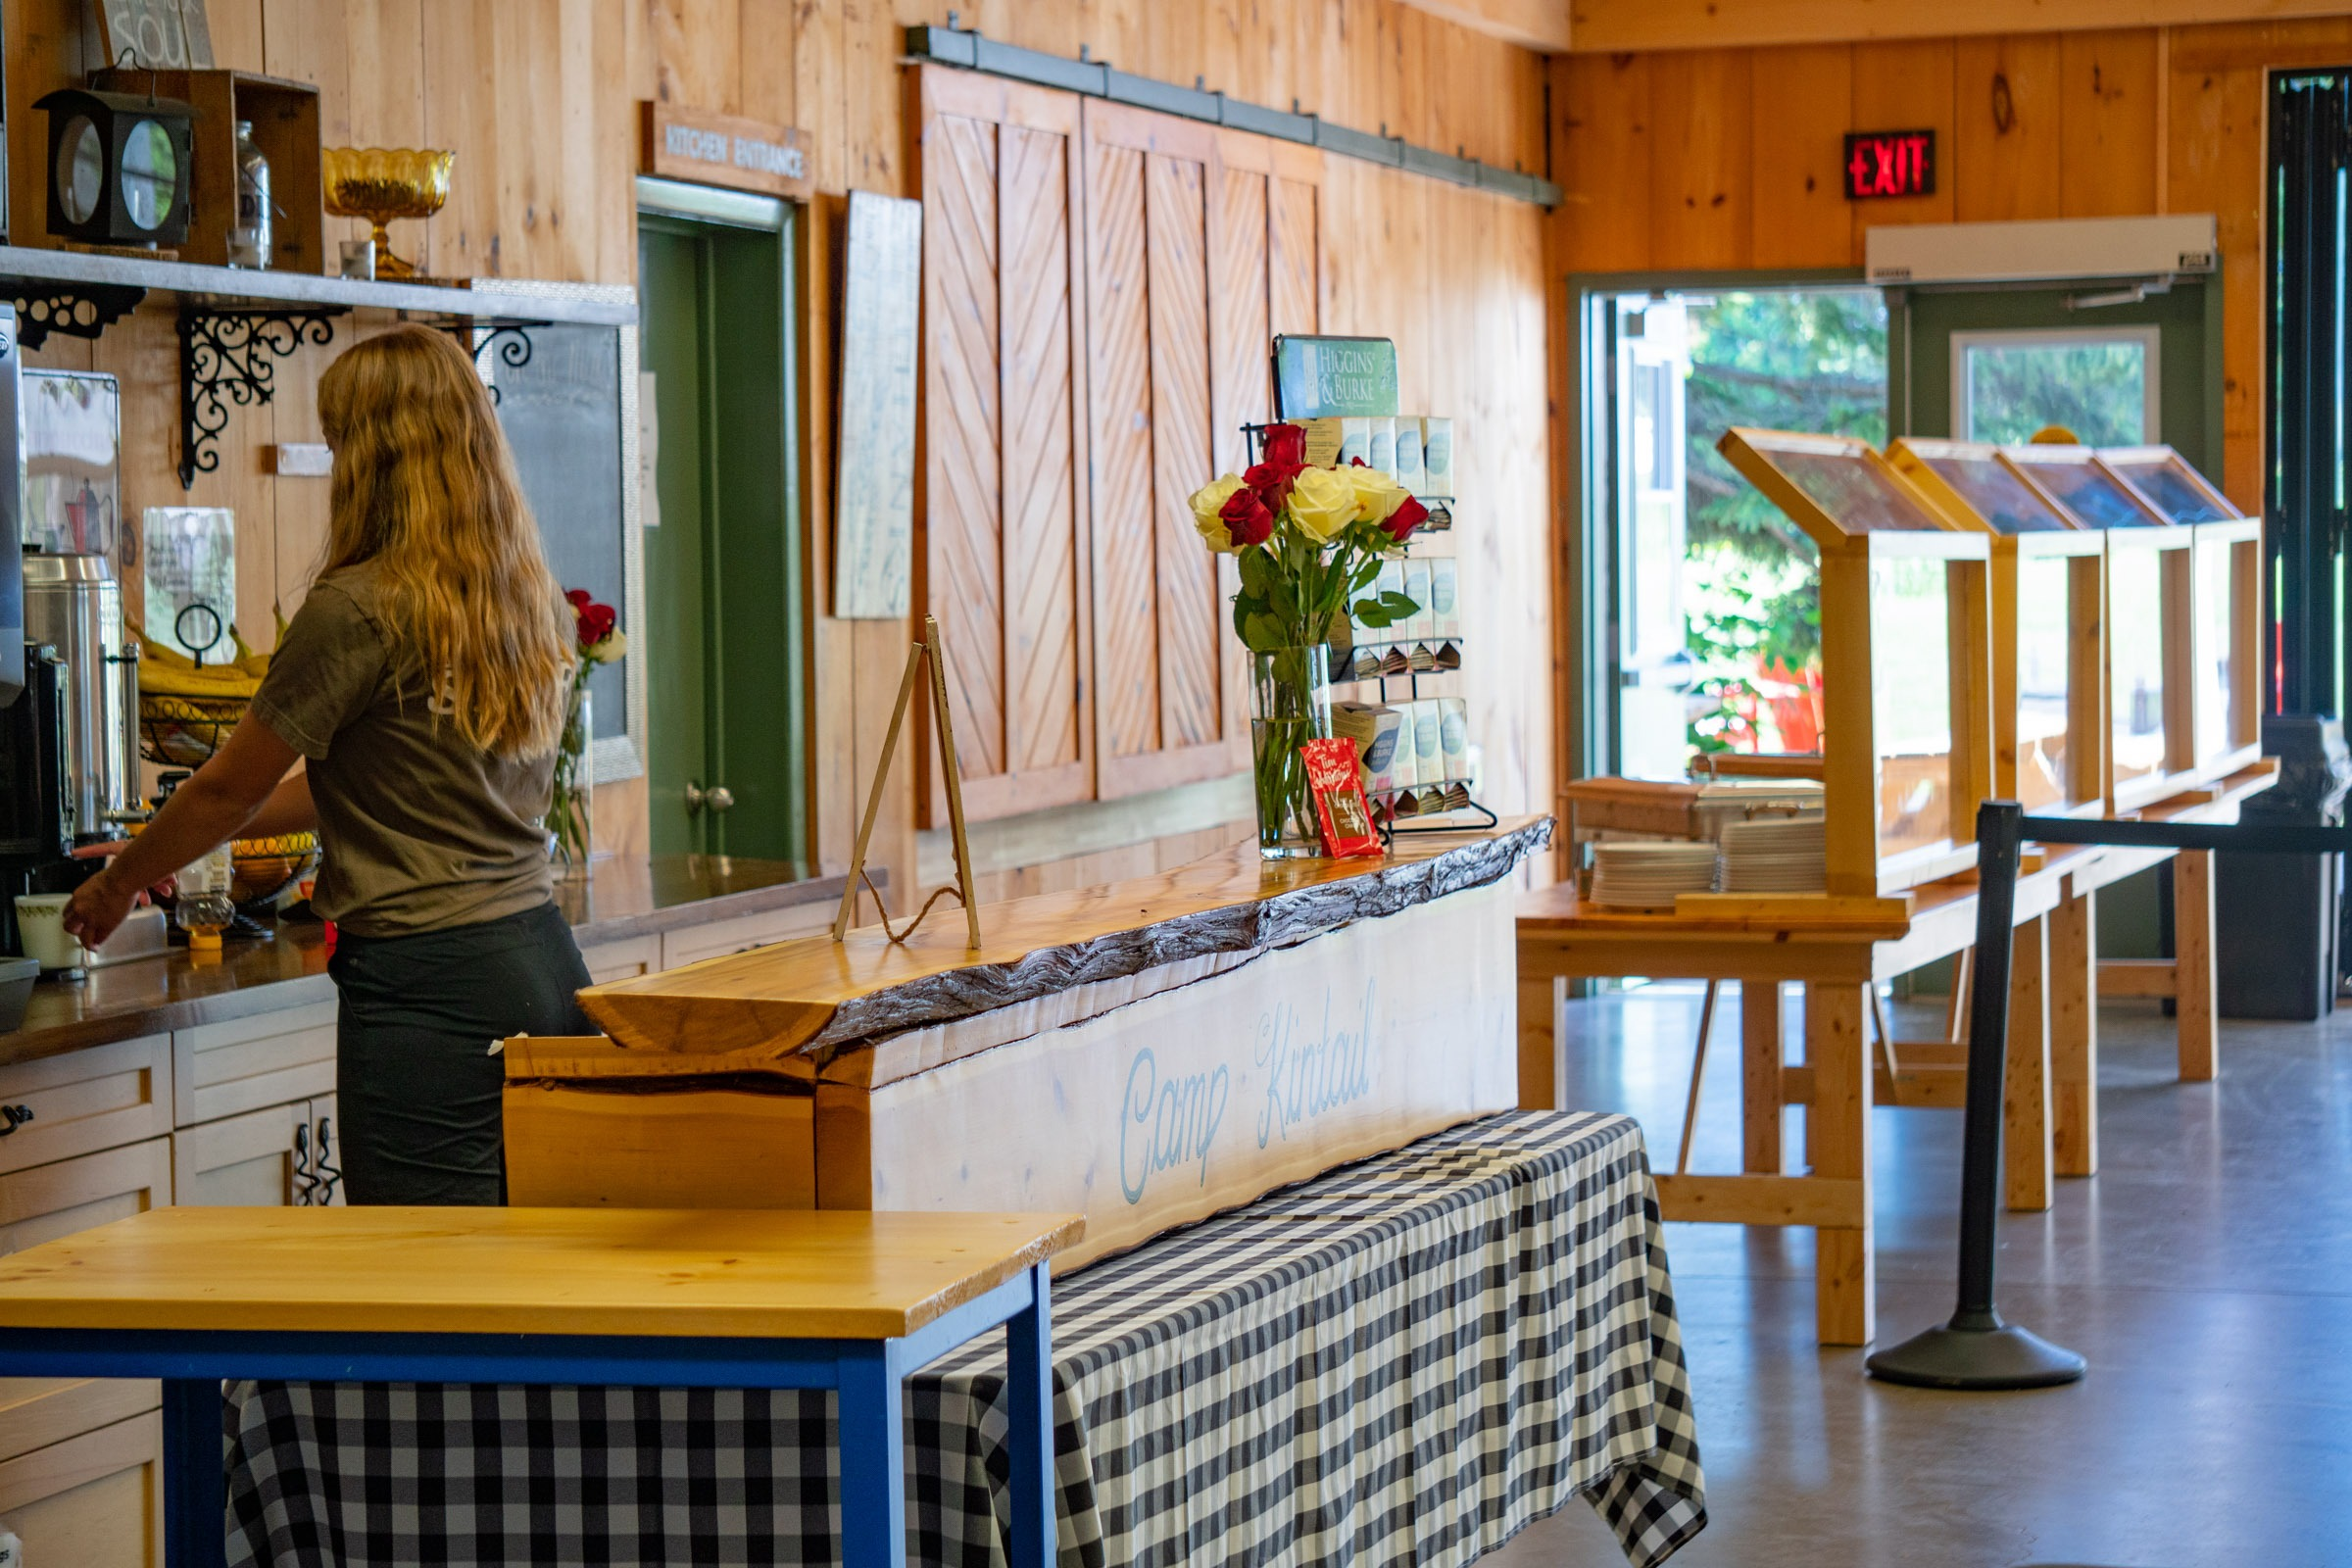 A staff member named Piglet prepares a coffee at the hospitality beverage station inside MacDonald Lodge dining hall.